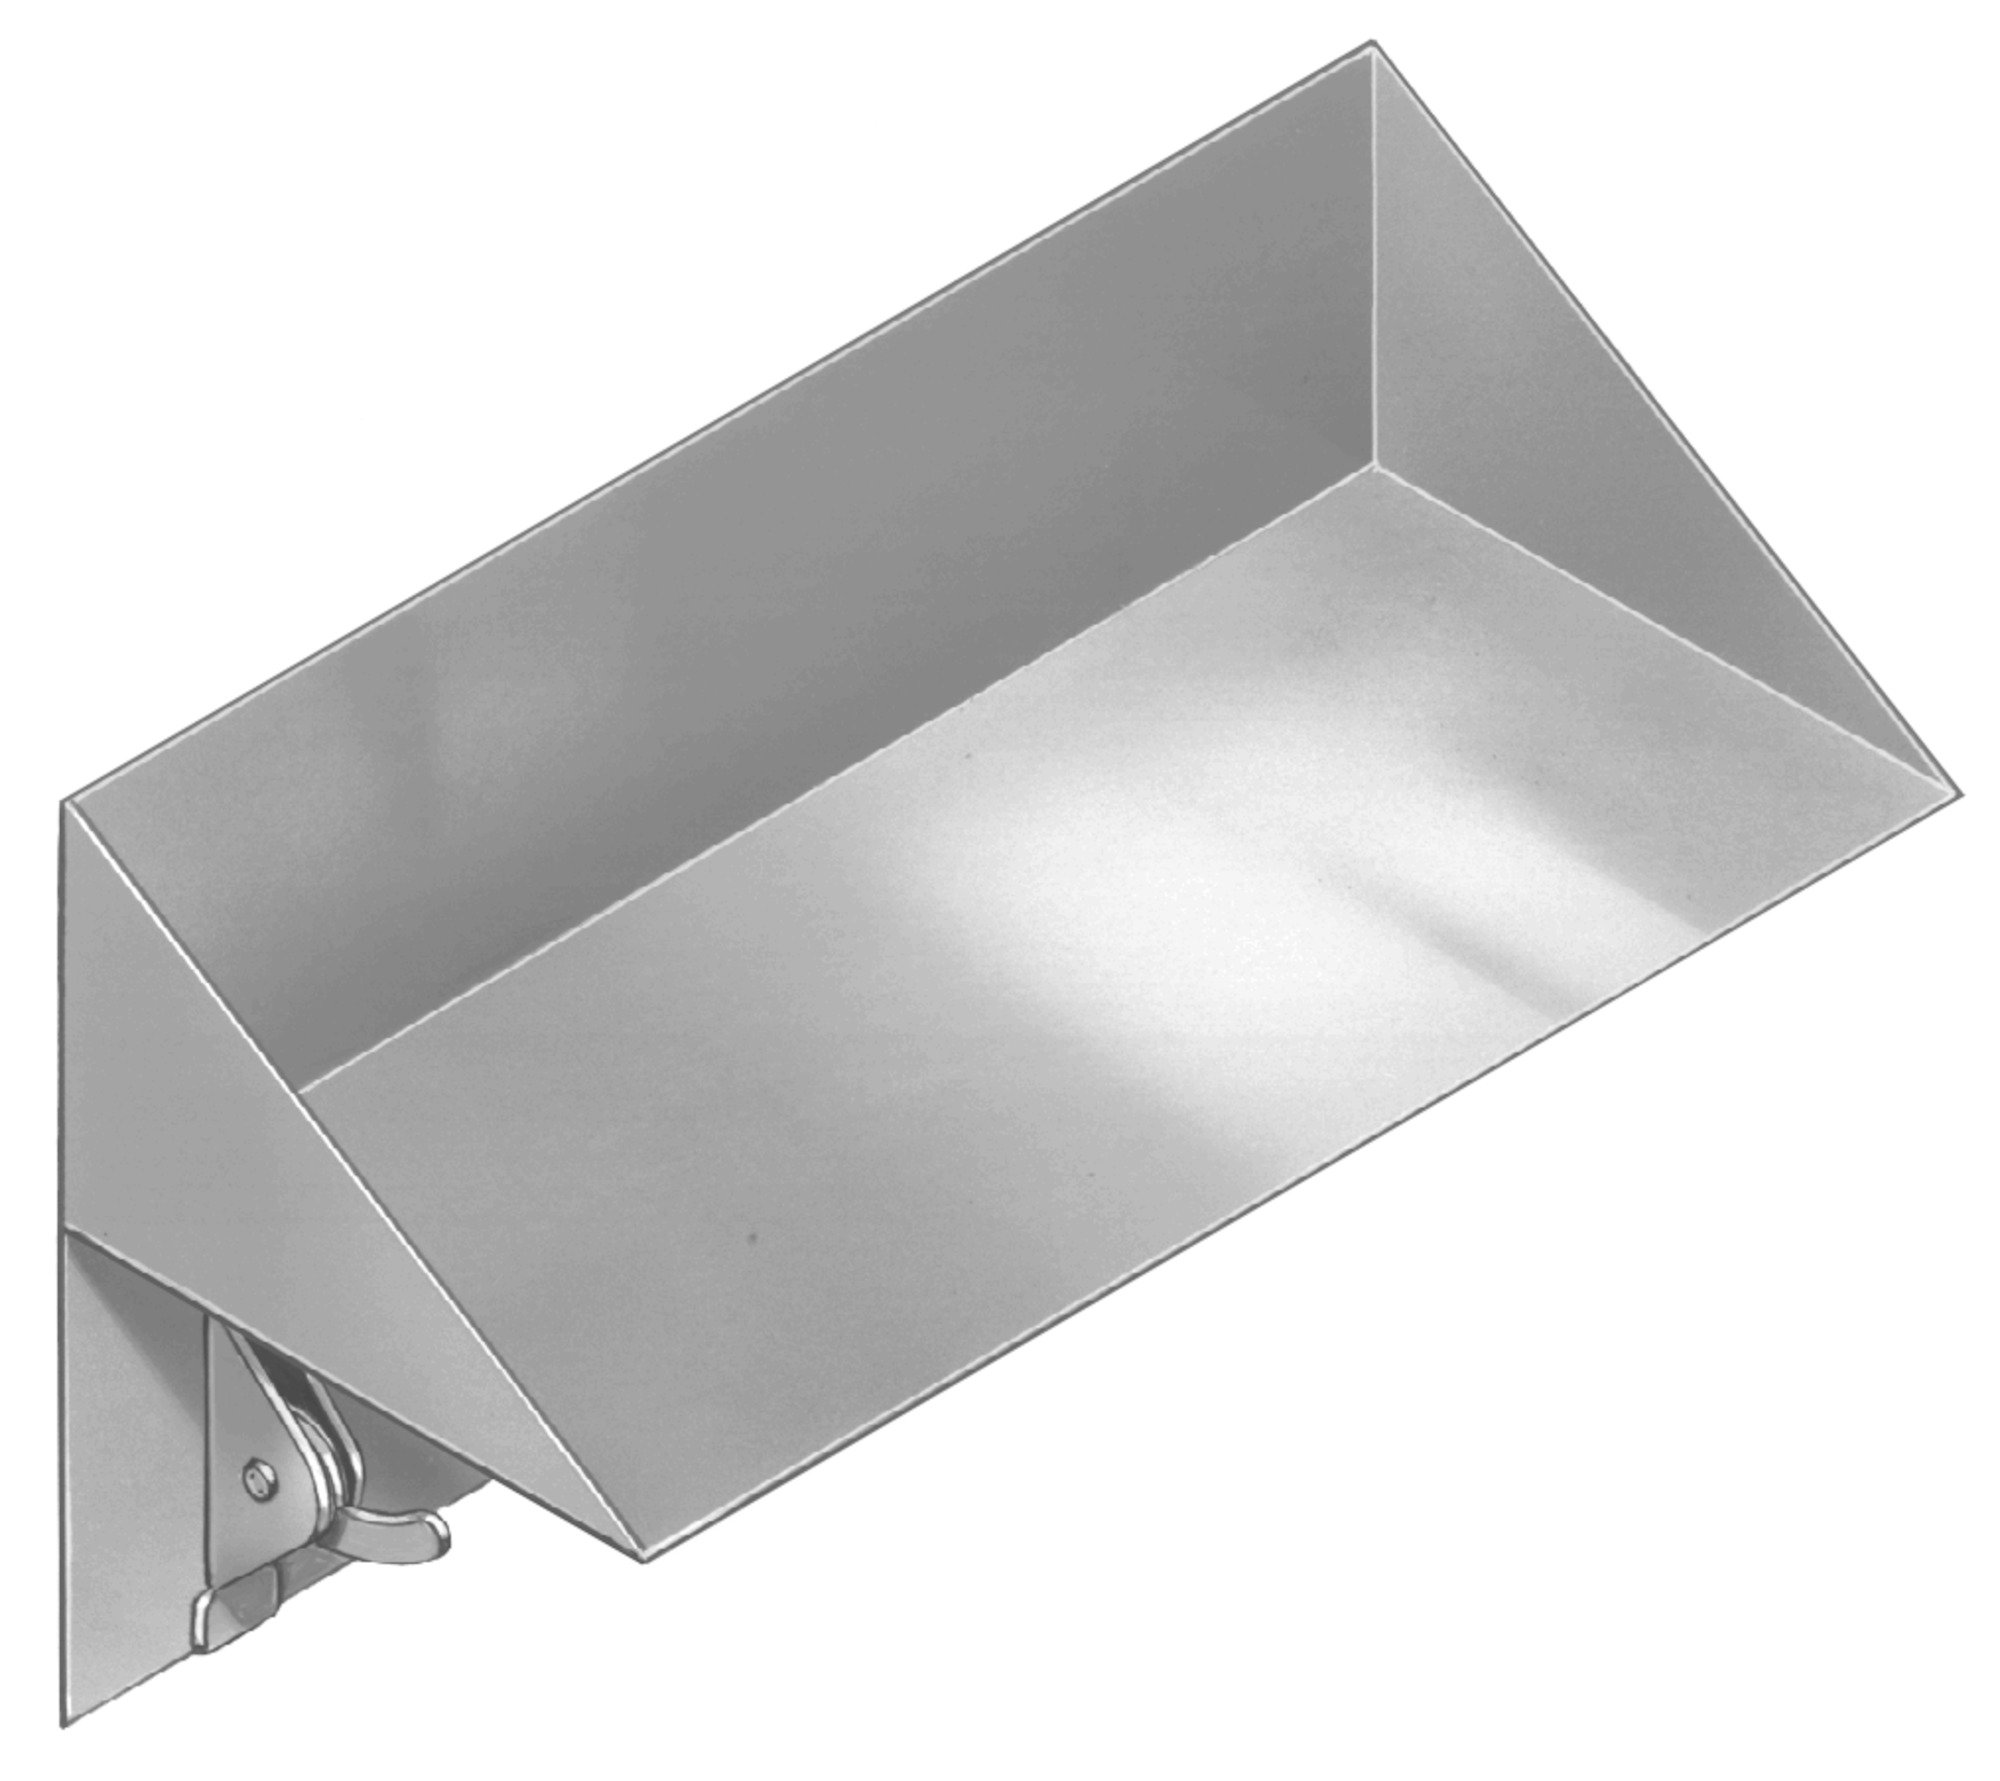 Shelves With Extras SA53-800000 - Accurate Door & Hardware, Inc